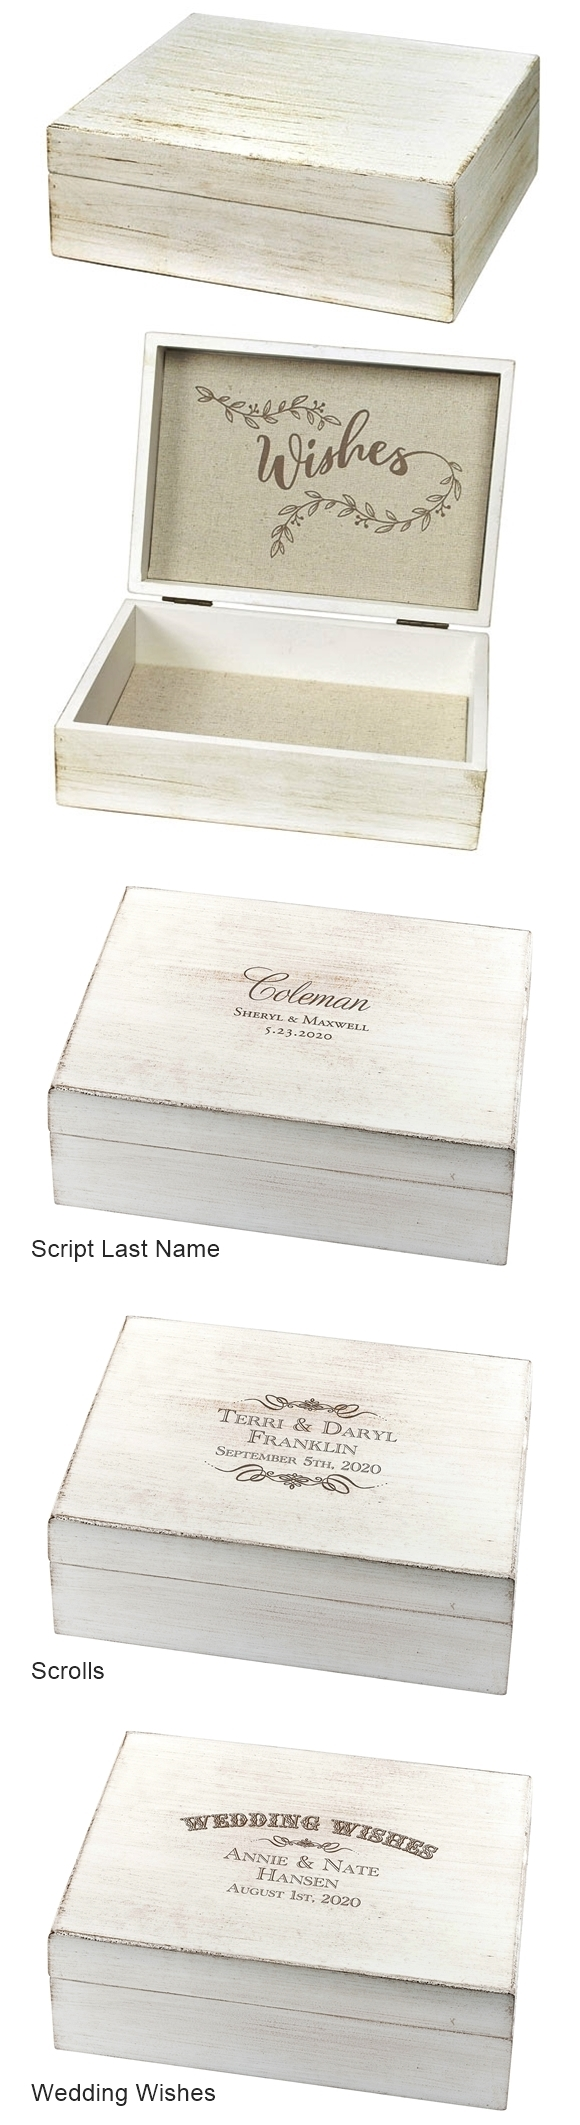 Lillian Rose Personalizable White-Wash Wooden 'Wishes' Card Box